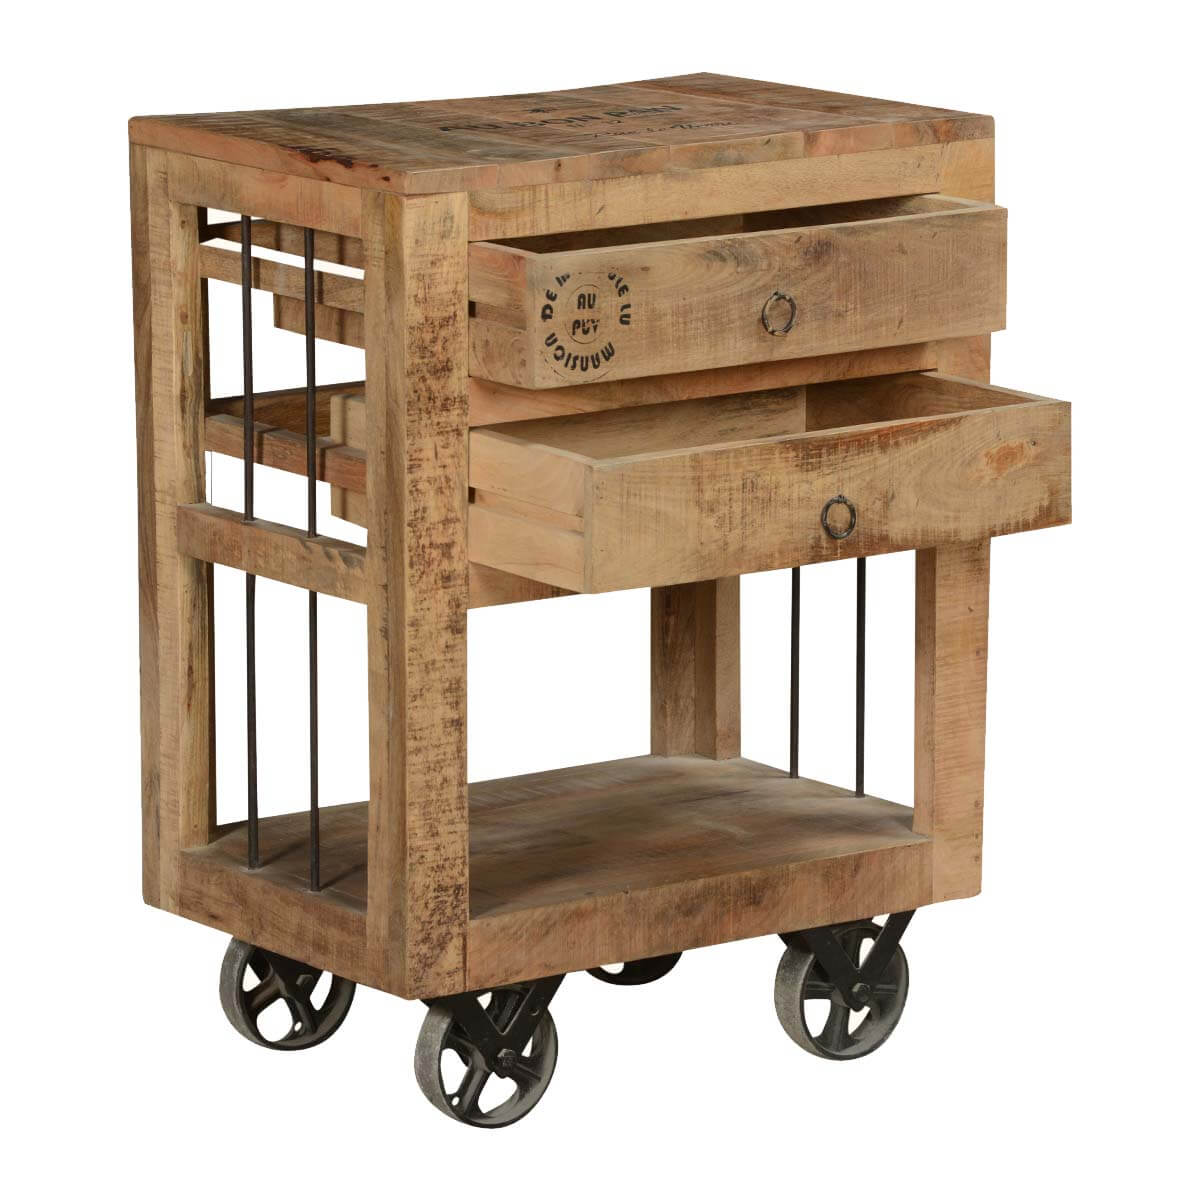 Industrial style rustic solid wood 2 drawer end table w for Rustic industrial end table